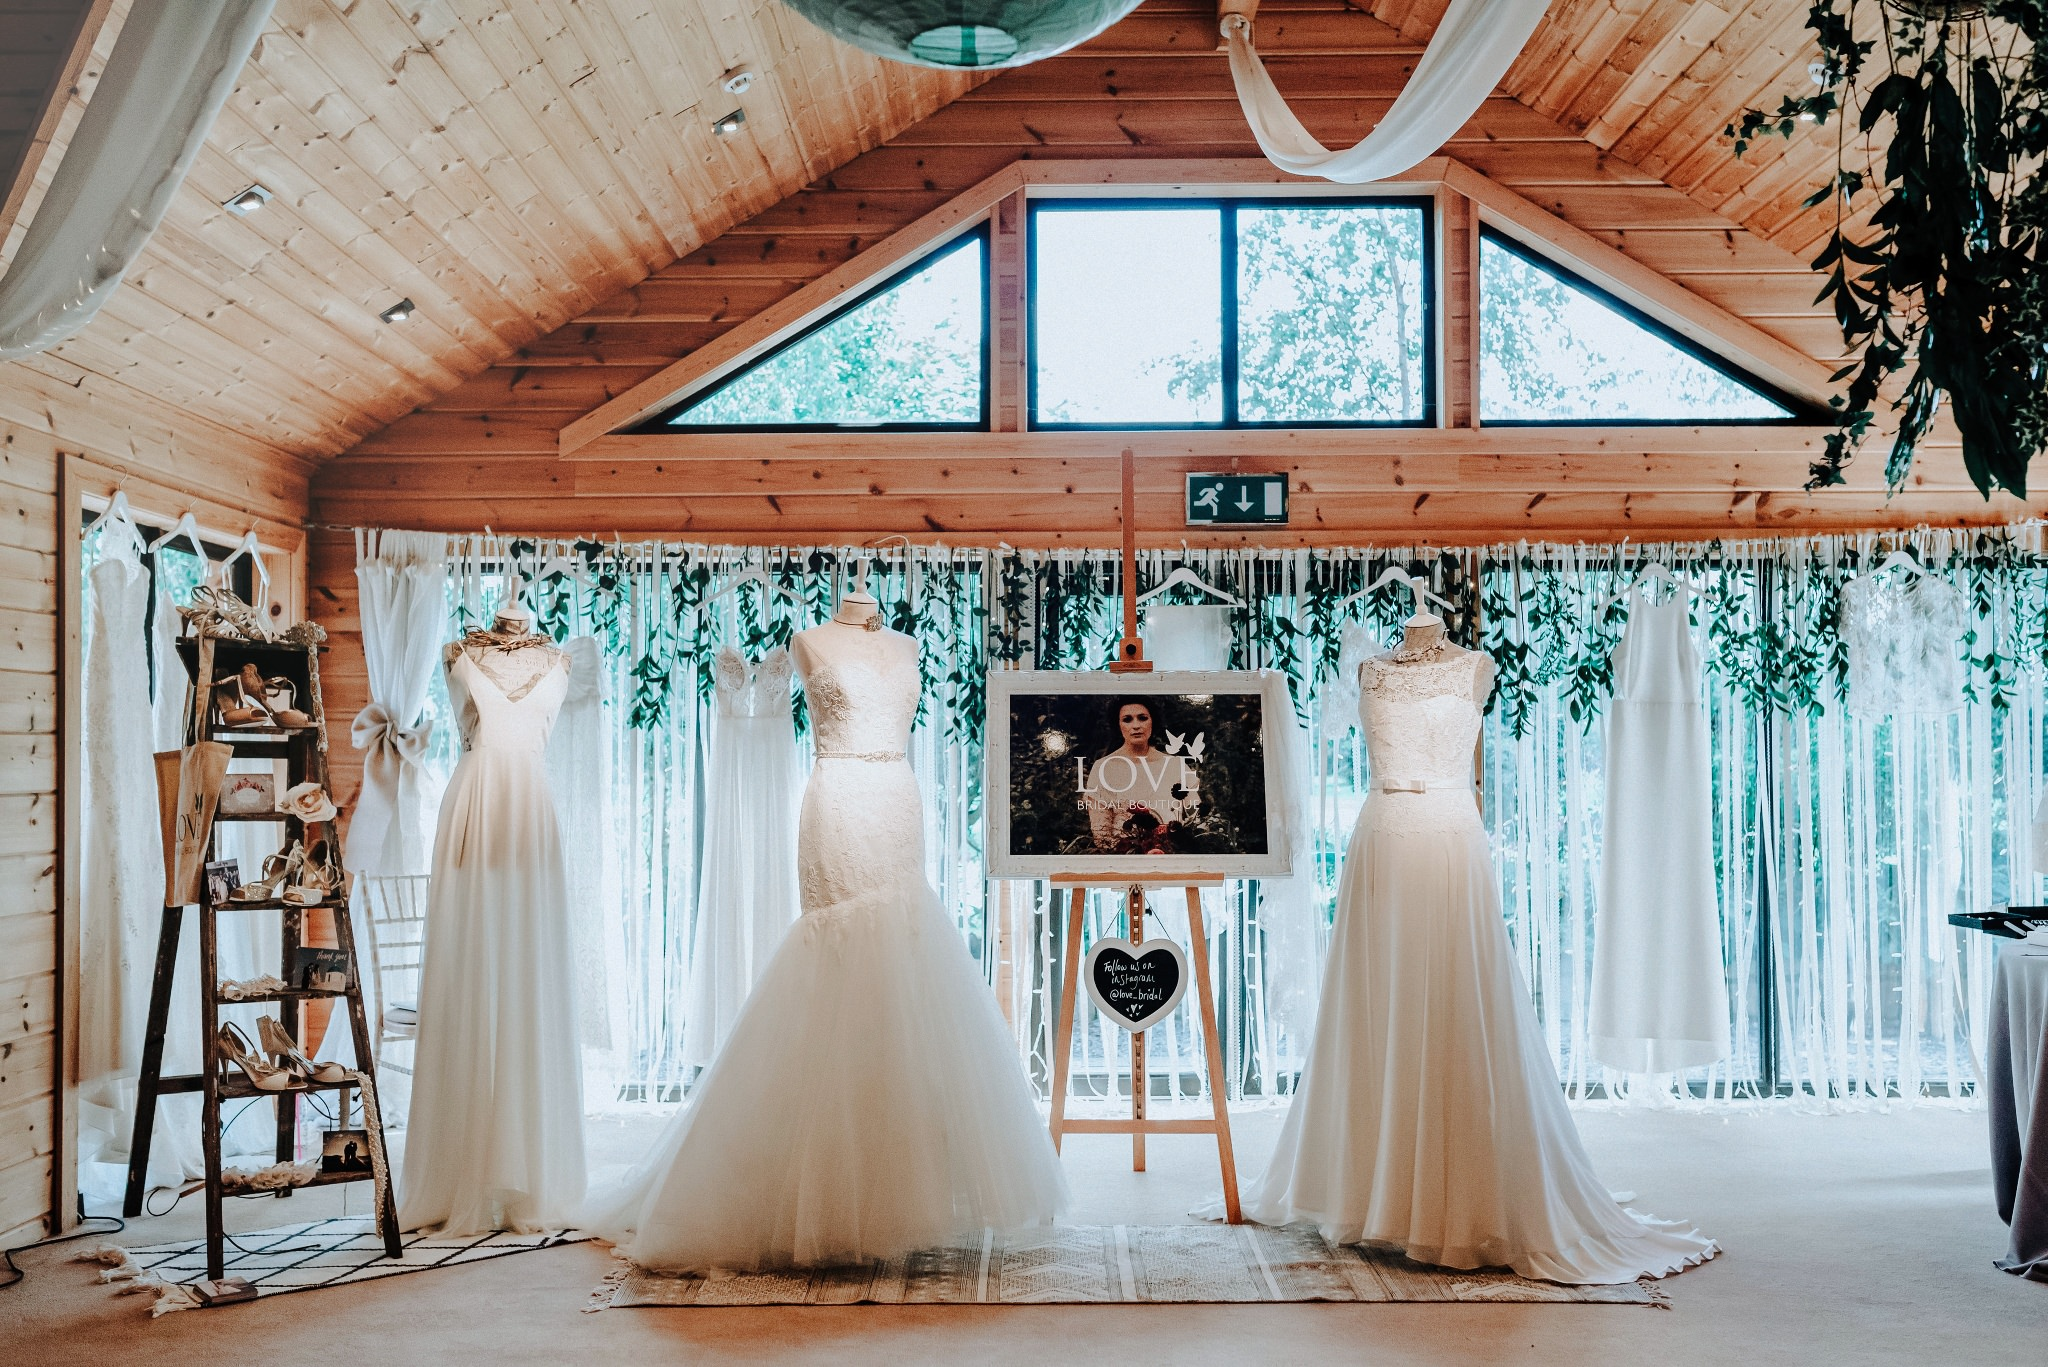 Love Bridal Boutique at Styal Lodge Wedding Venue